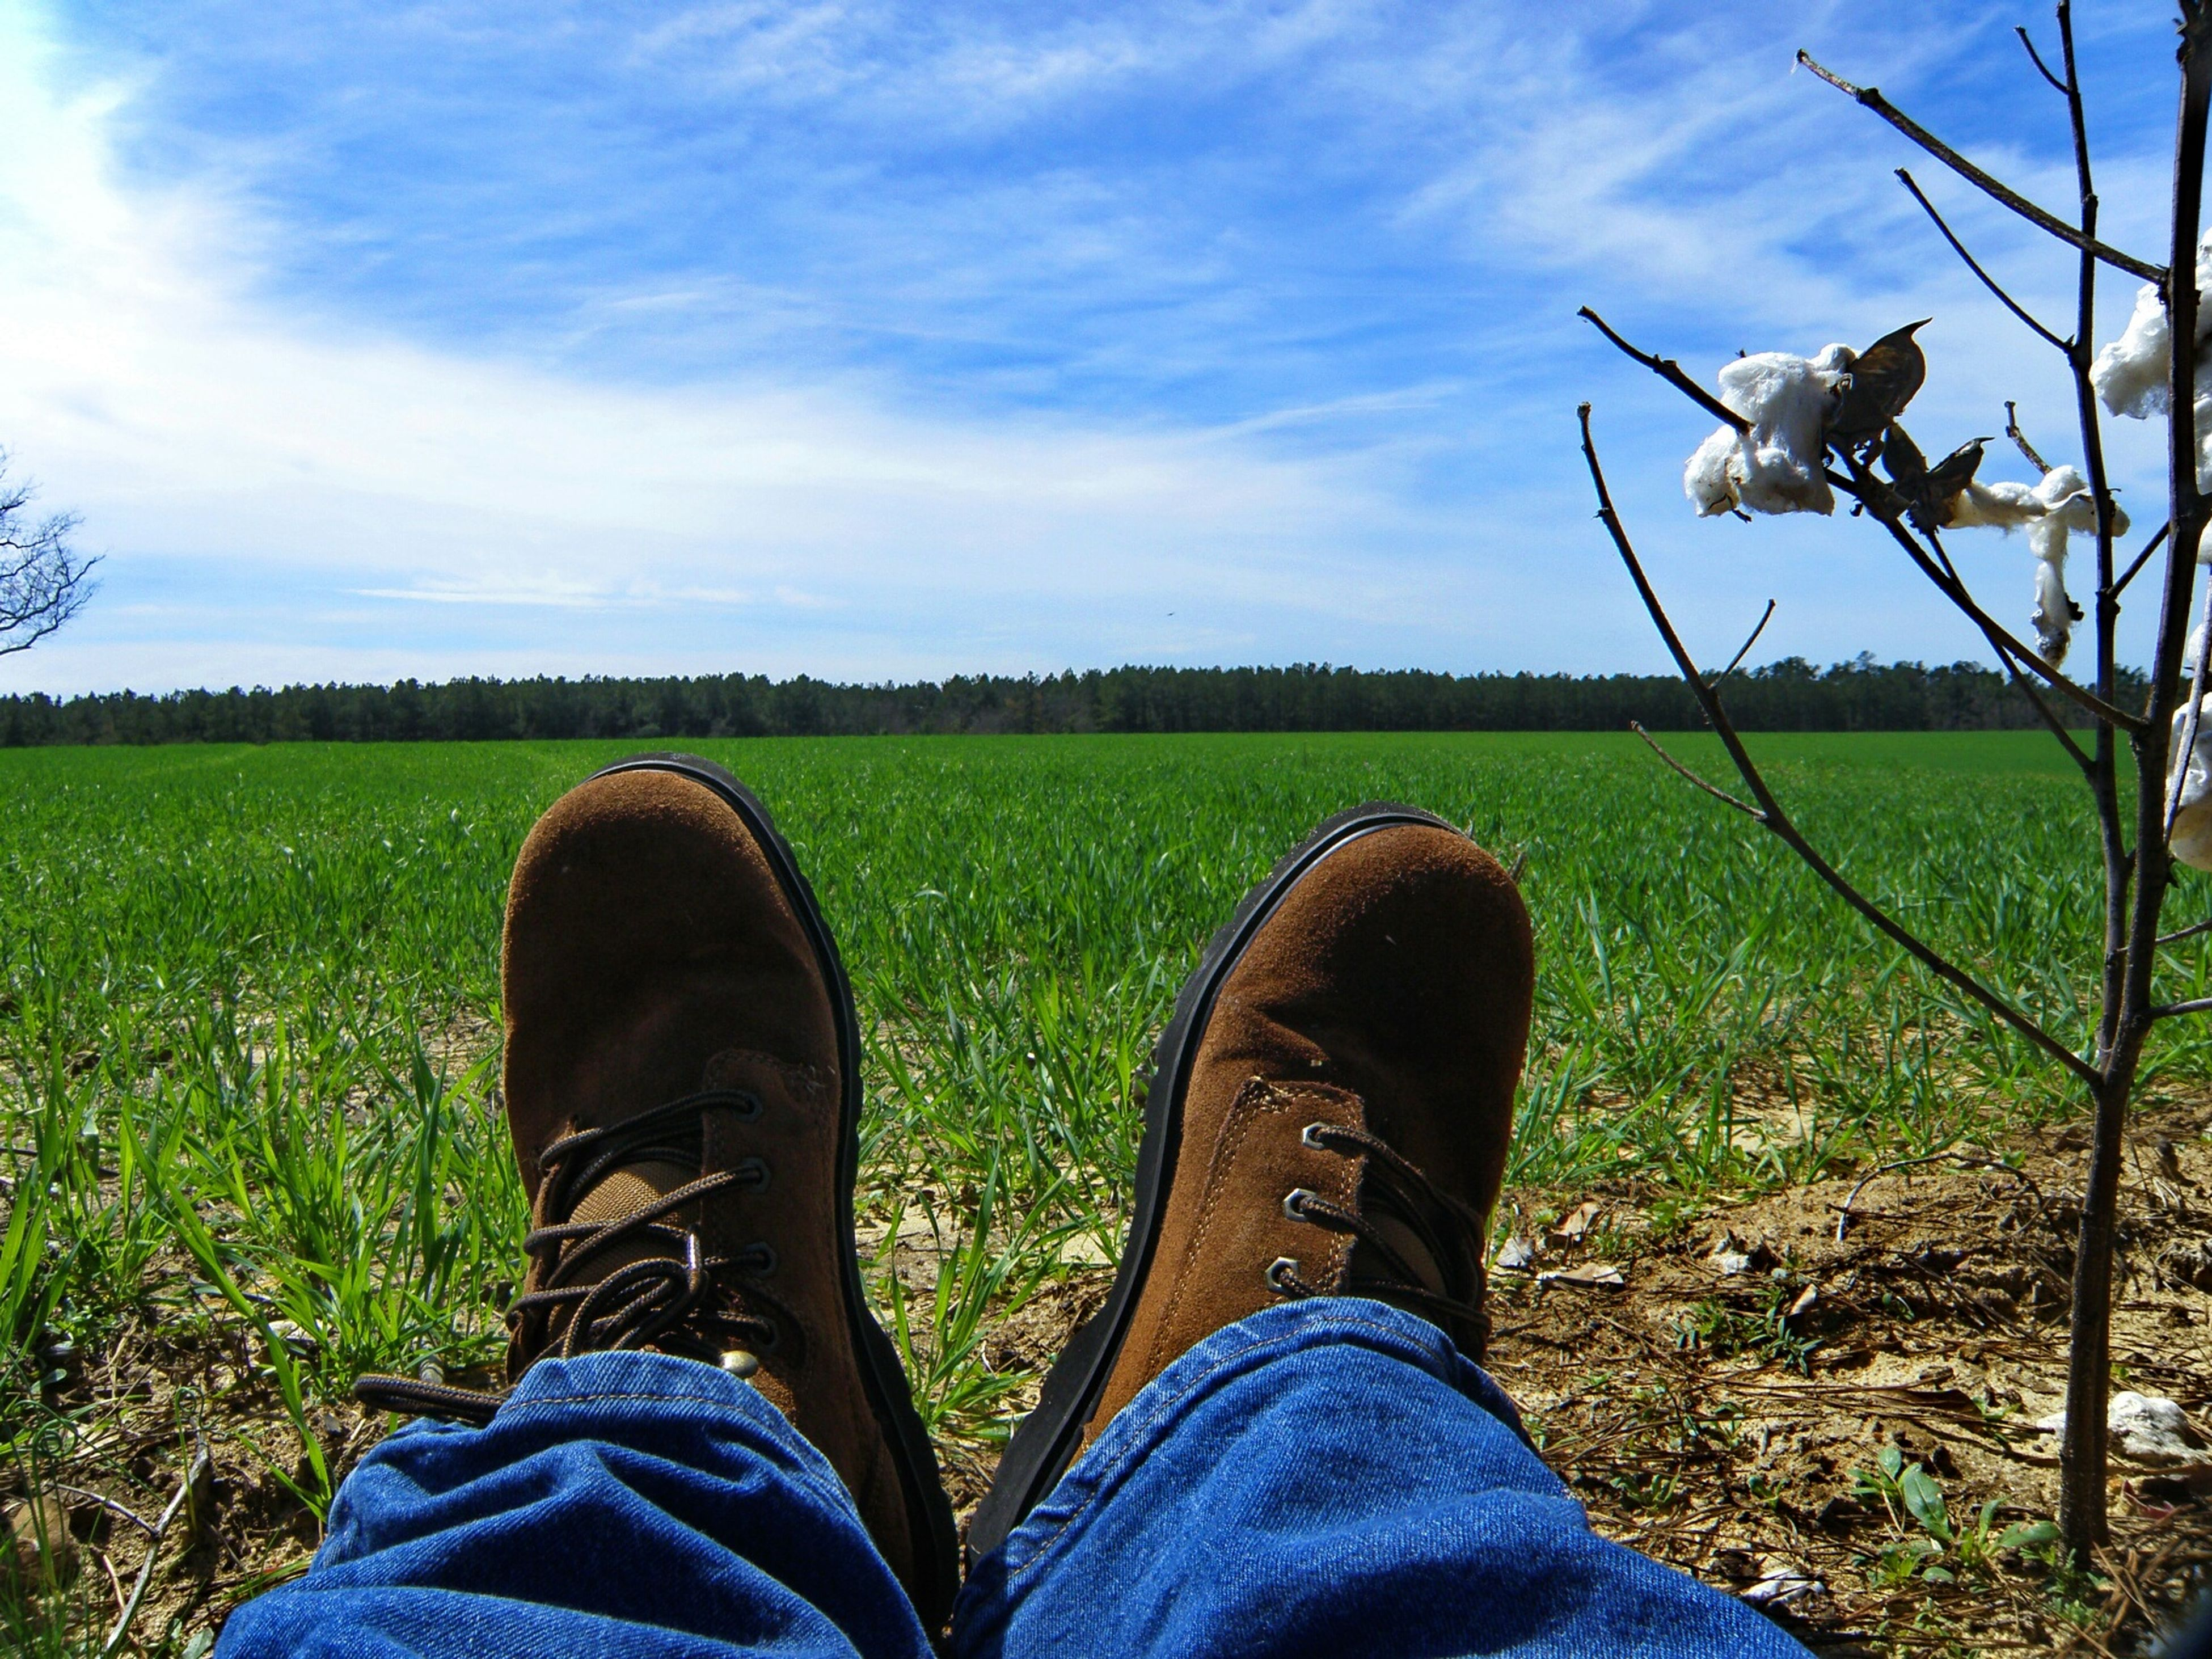 low section, person, shoe, personal perspective, field, jeans, grass, human foot, footwear, standing, men, lifestyles, grassy, leisure activity, landscape, sky, blue